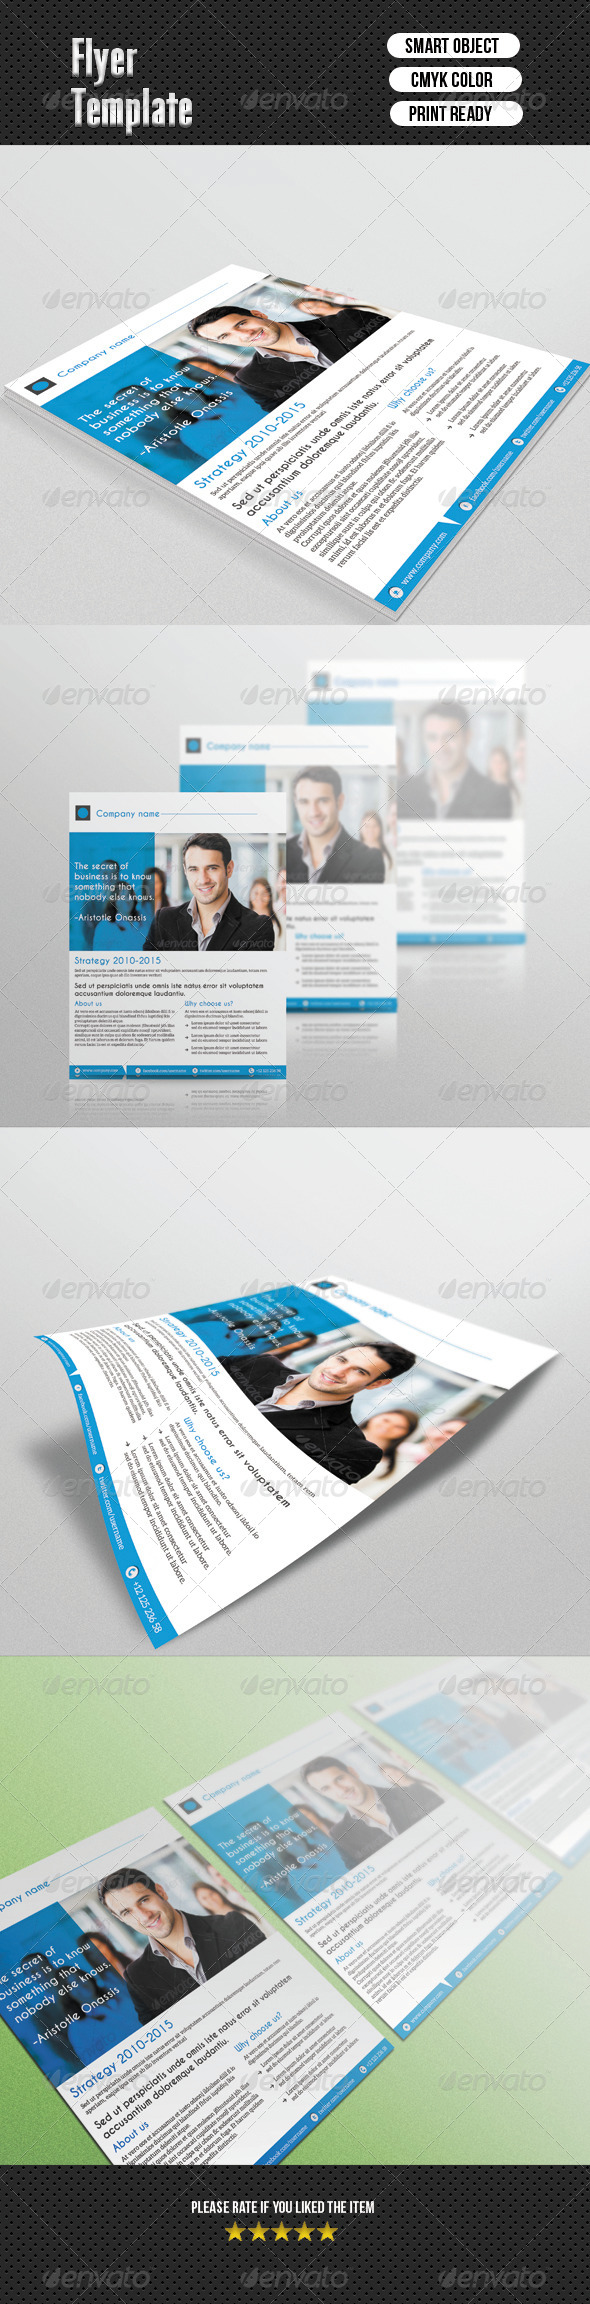 GraphicRiver Corporate Flyer Template 6651782